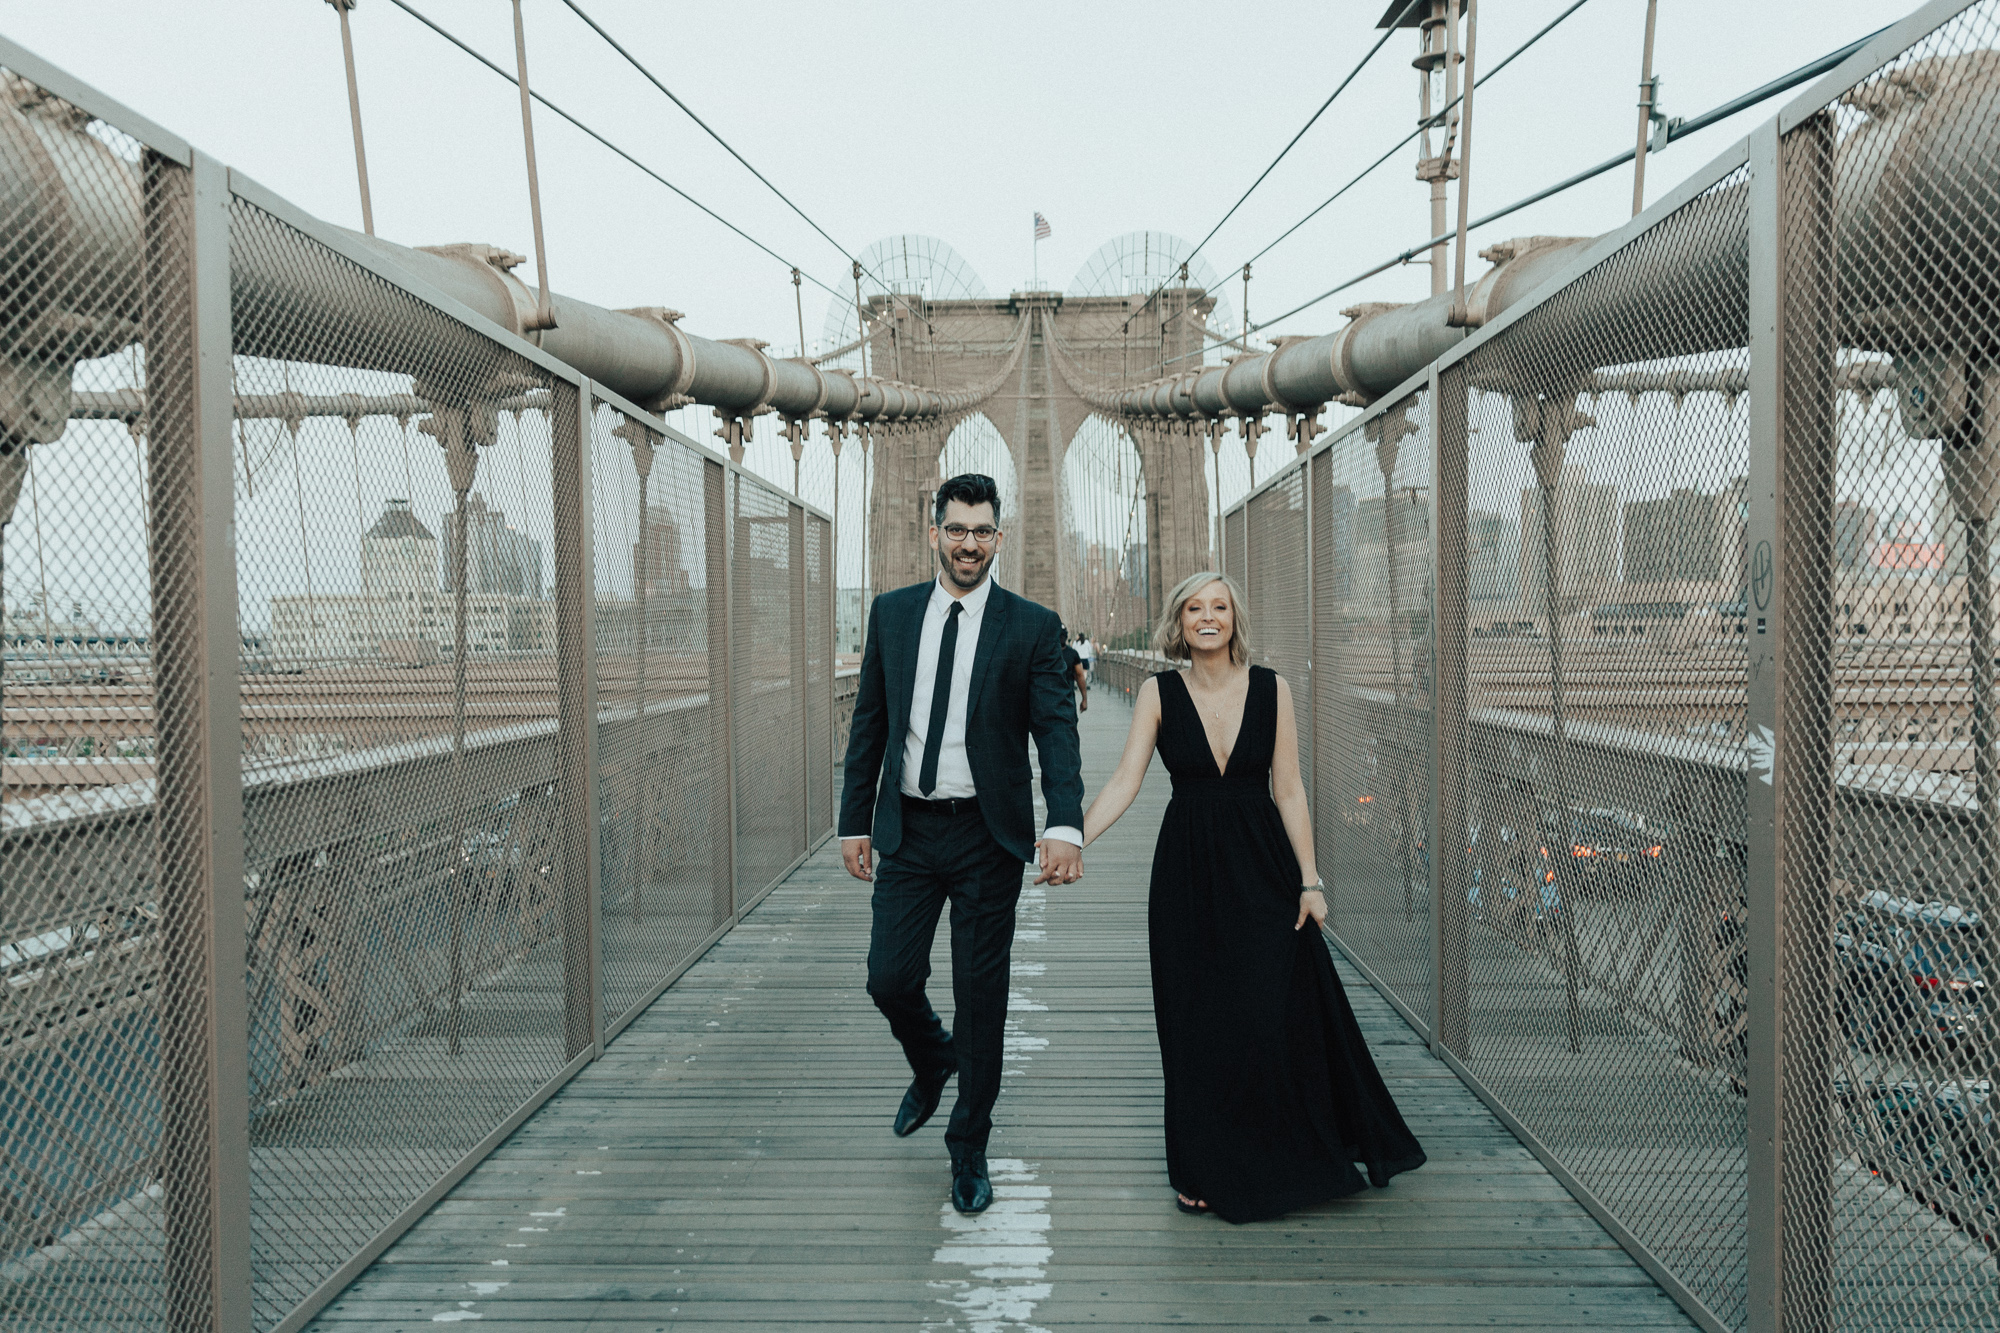 brooklyn_nyc_engagement_photography-76-of-83.jpg